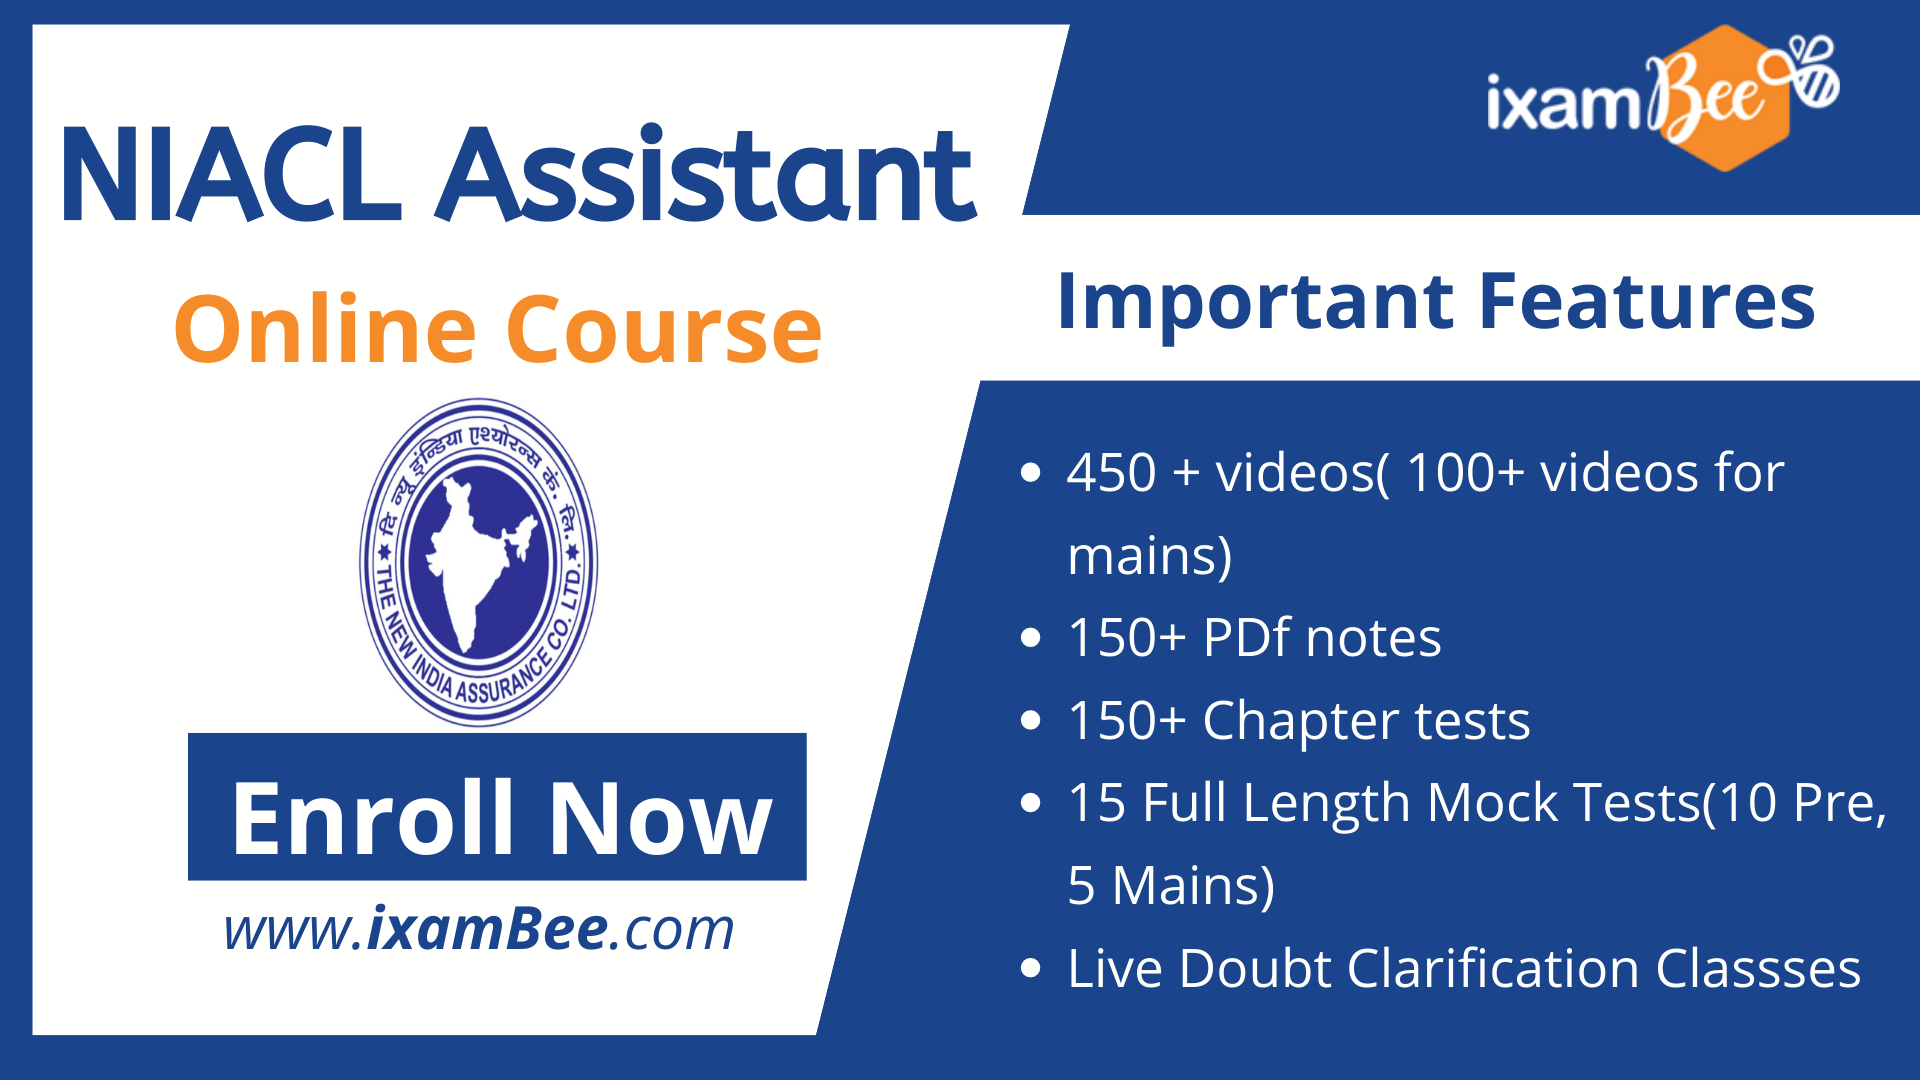 NIACL Assistant online course